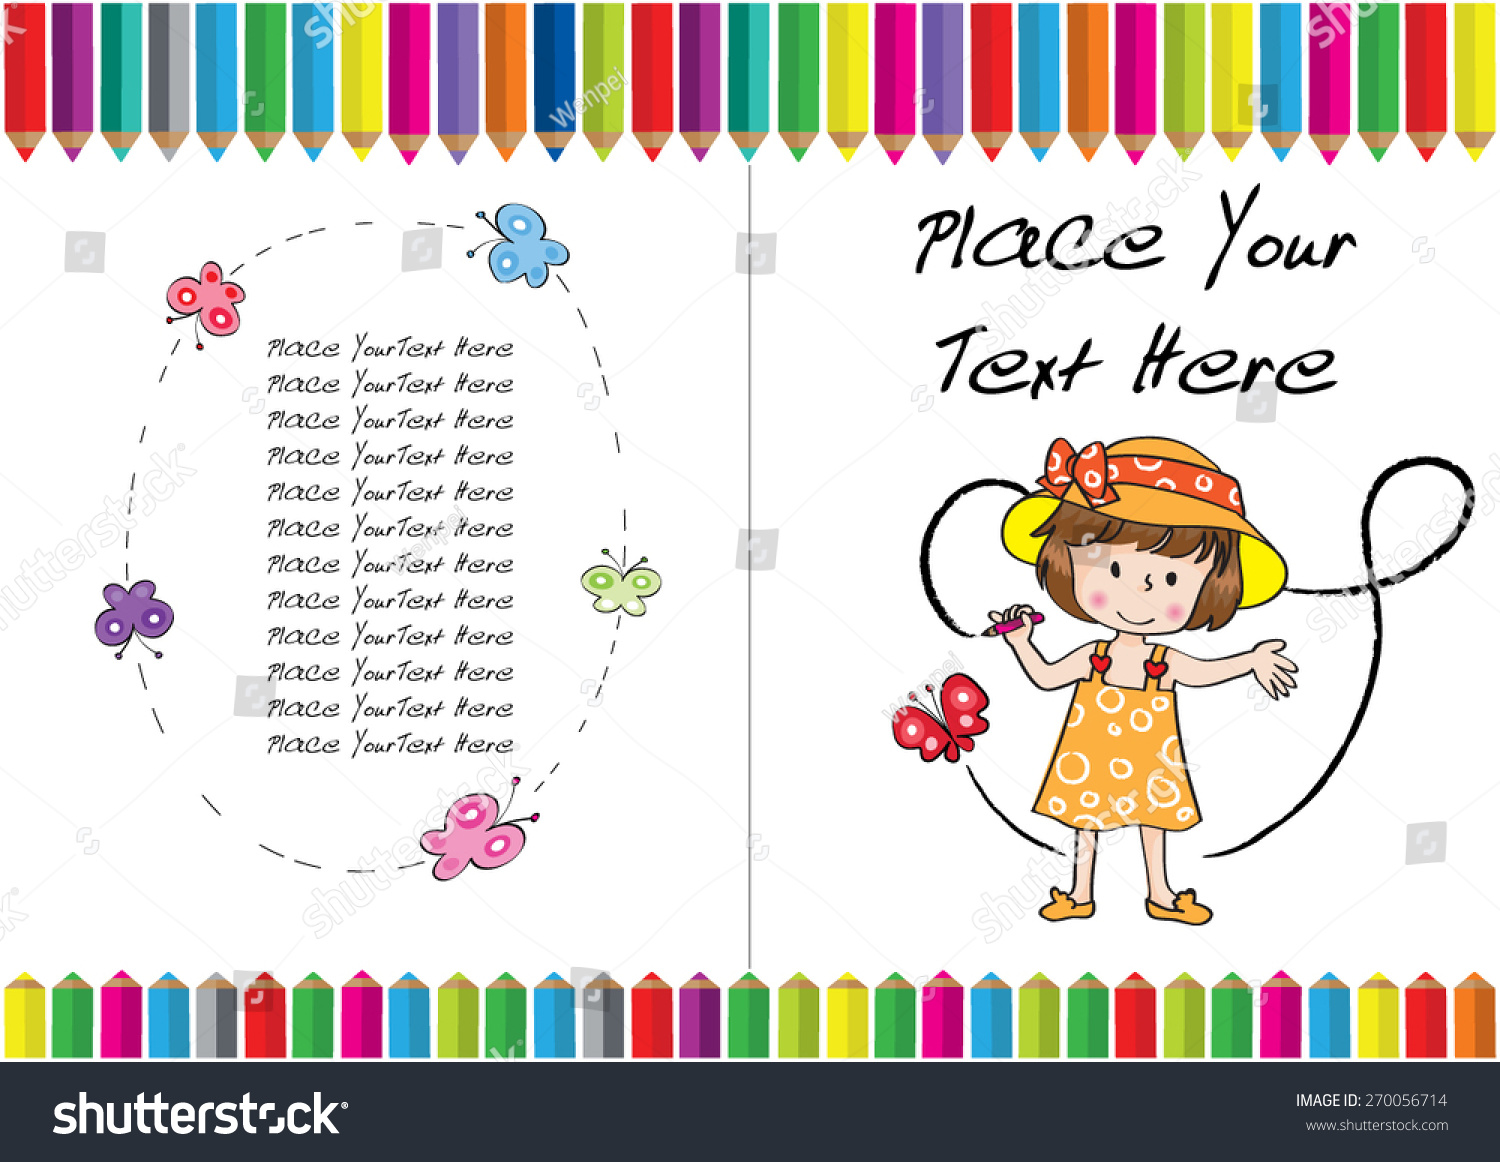 Kids Coloring Book Cover Design Royalty Free Stock Image